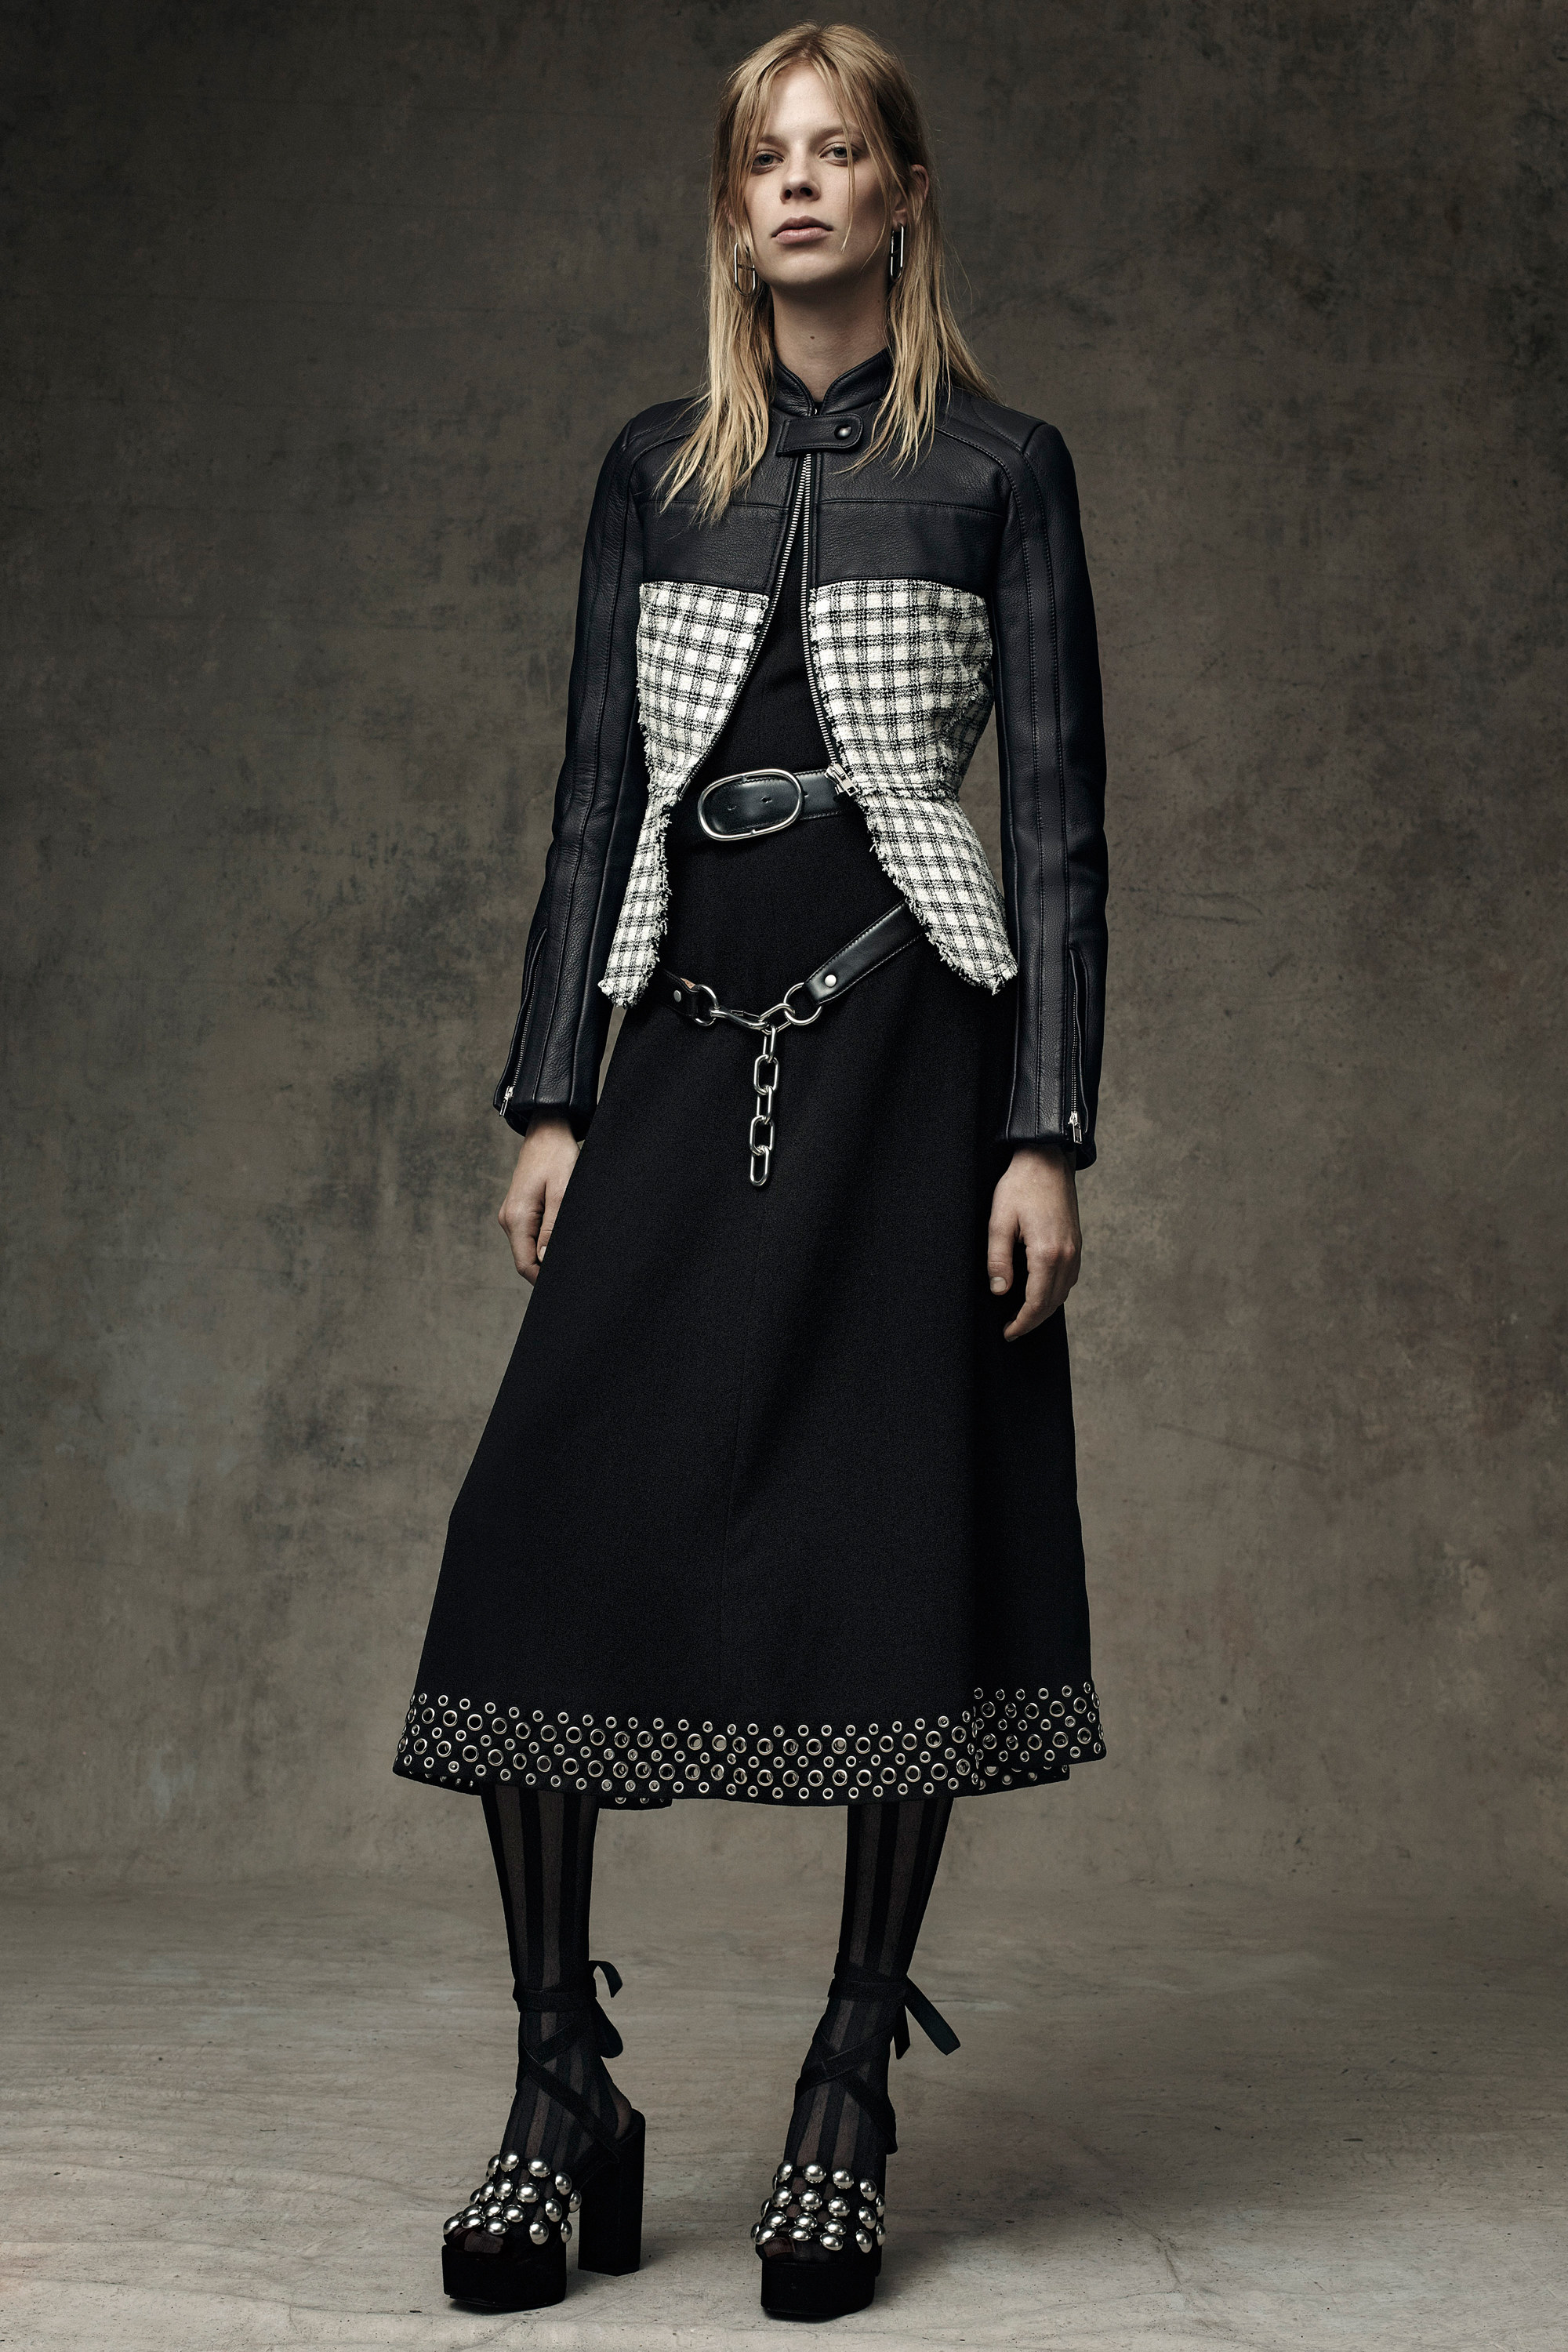 alexander-wang-pre-fall-2016-lookbook-07.jpg